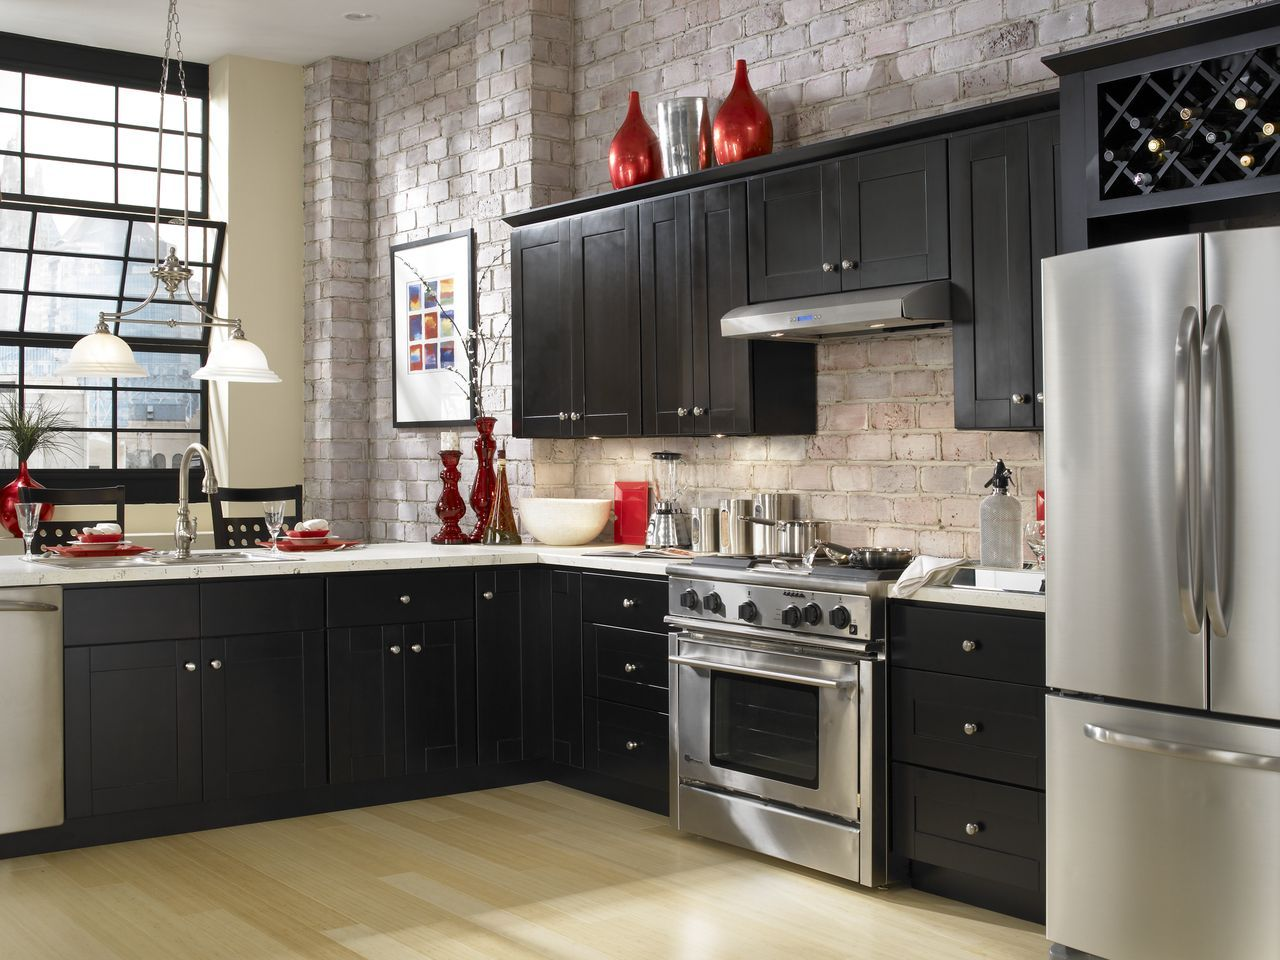 Kitchen Cabinets To Go 17 Best Images About Kitchen Cabinets On Pinterest Shaker Style